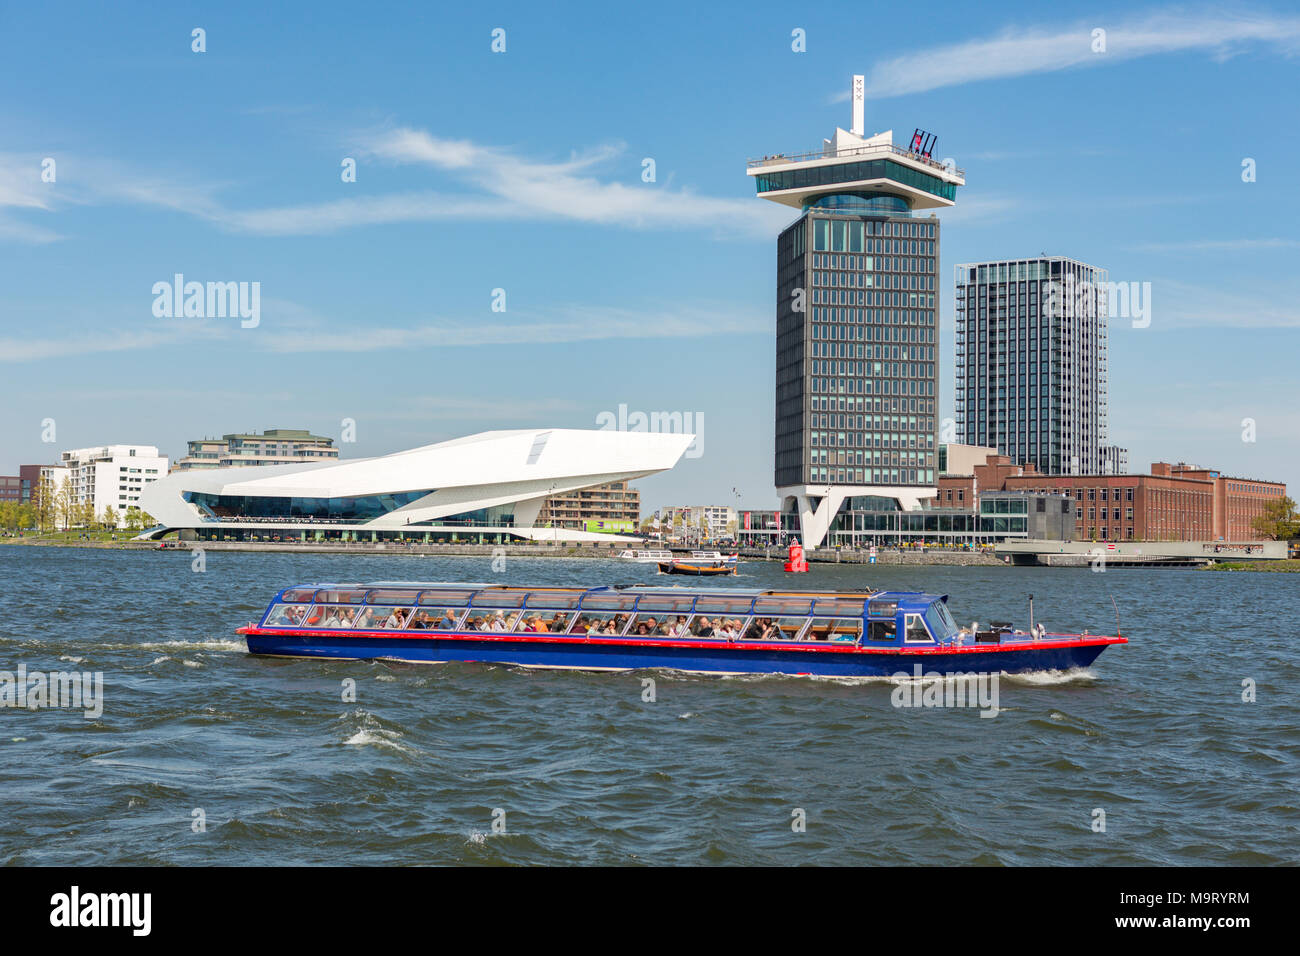 EYE Filmuseum and the A'DAM Lookout tower over 't IJ river on a sunny day in Amsterdam Noord in The Netherlands. - Stock Image